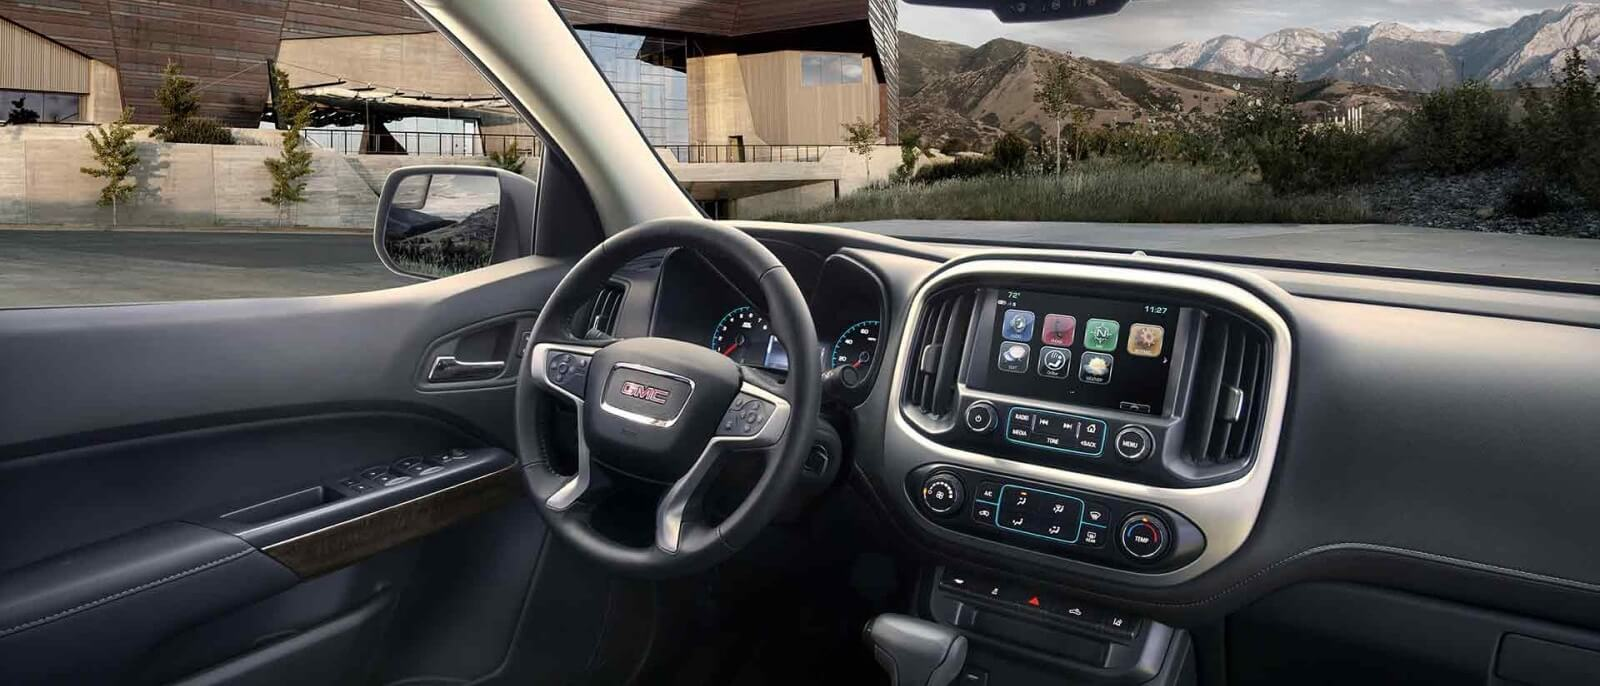 2017 GMC Canyon front interior